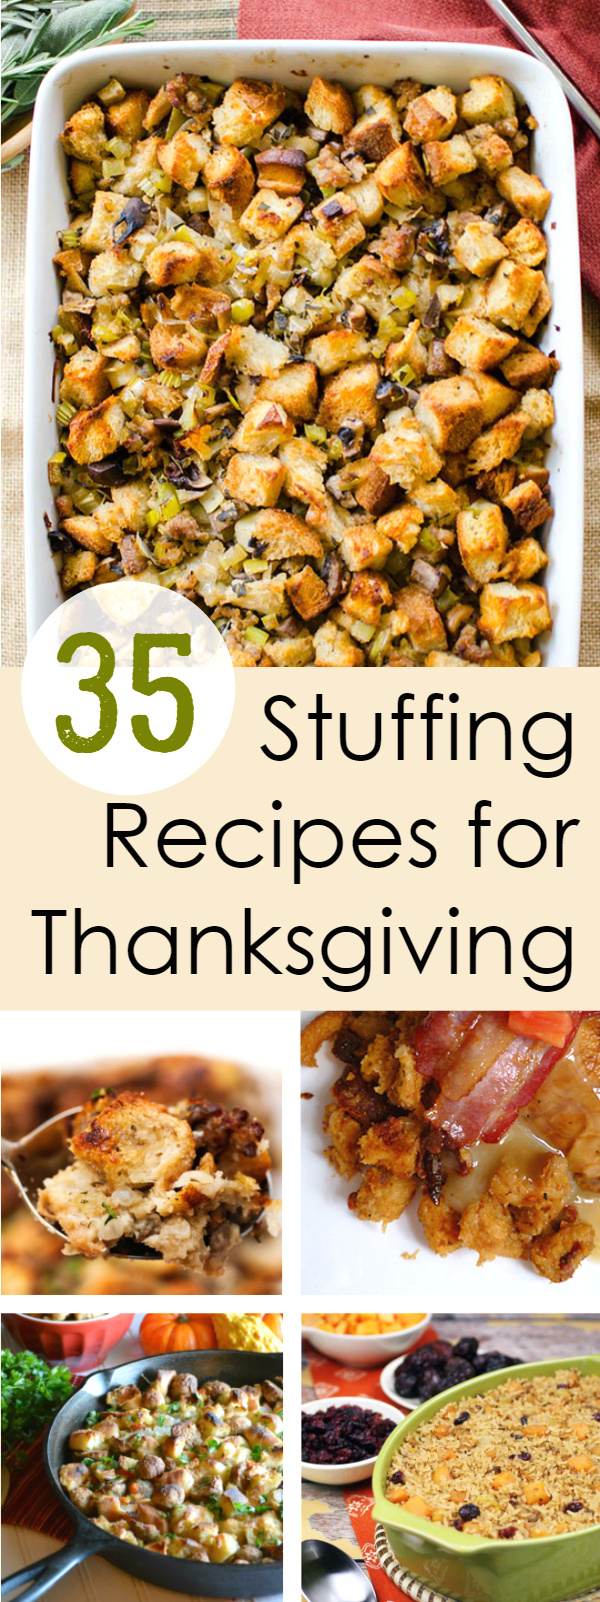 Stuffing Recipes for Thanksgiving